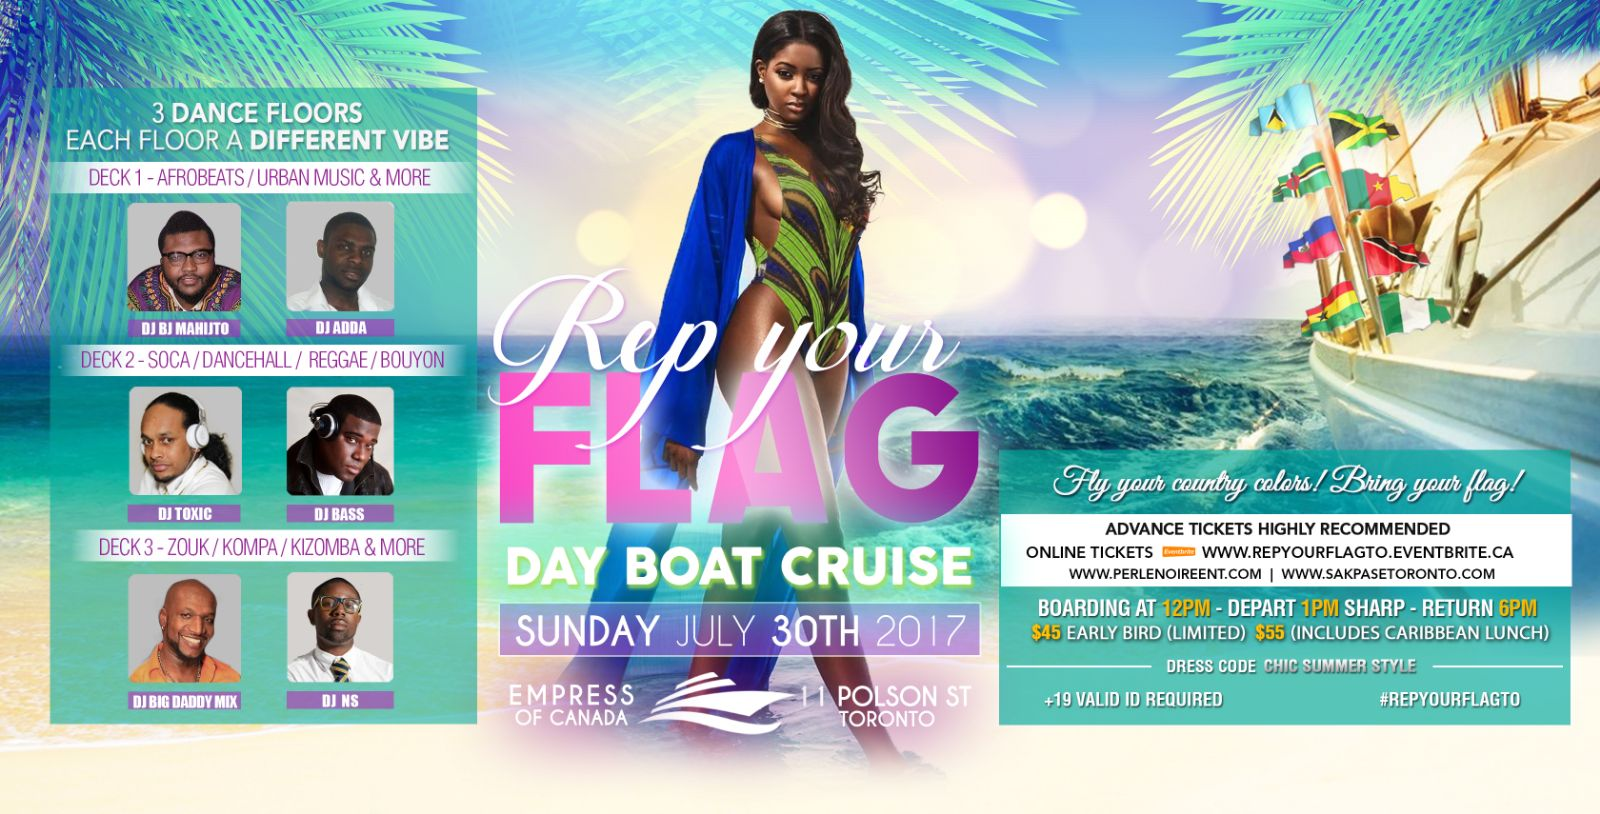 Boat cruise party in Toronto